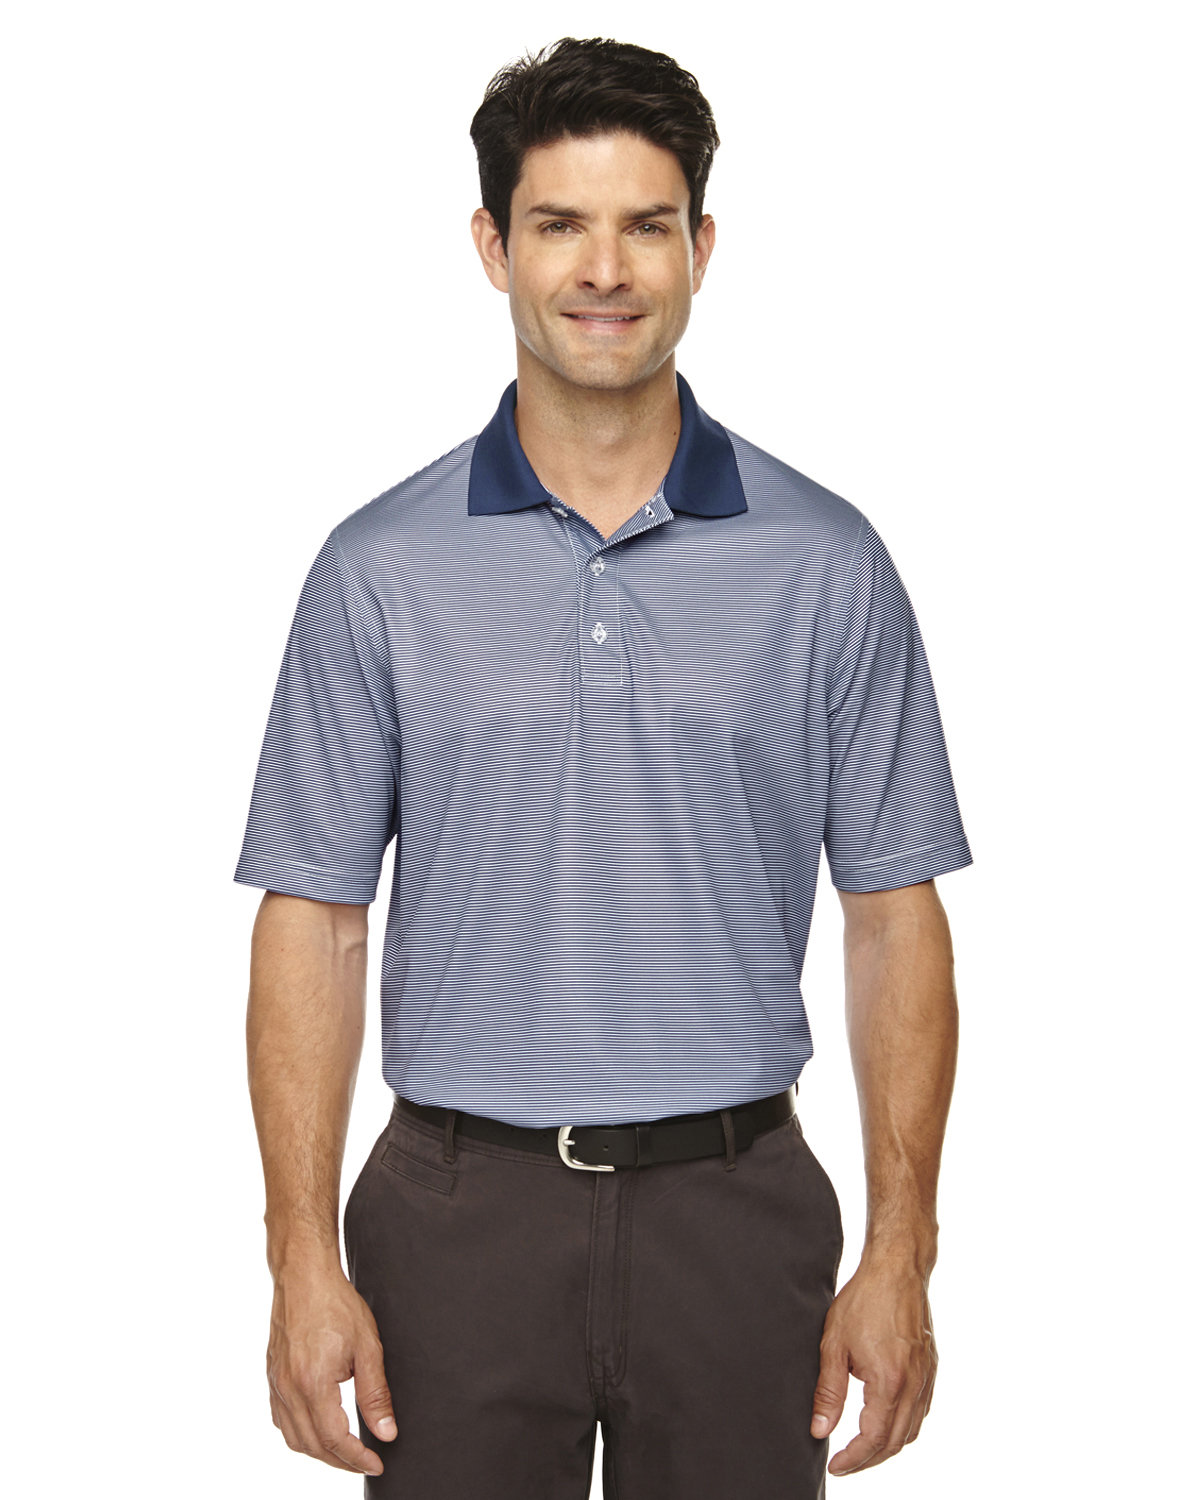 Extreme Men's Eperformance™ Launch Snag Protection Striped Polo CLASSIC NAVY